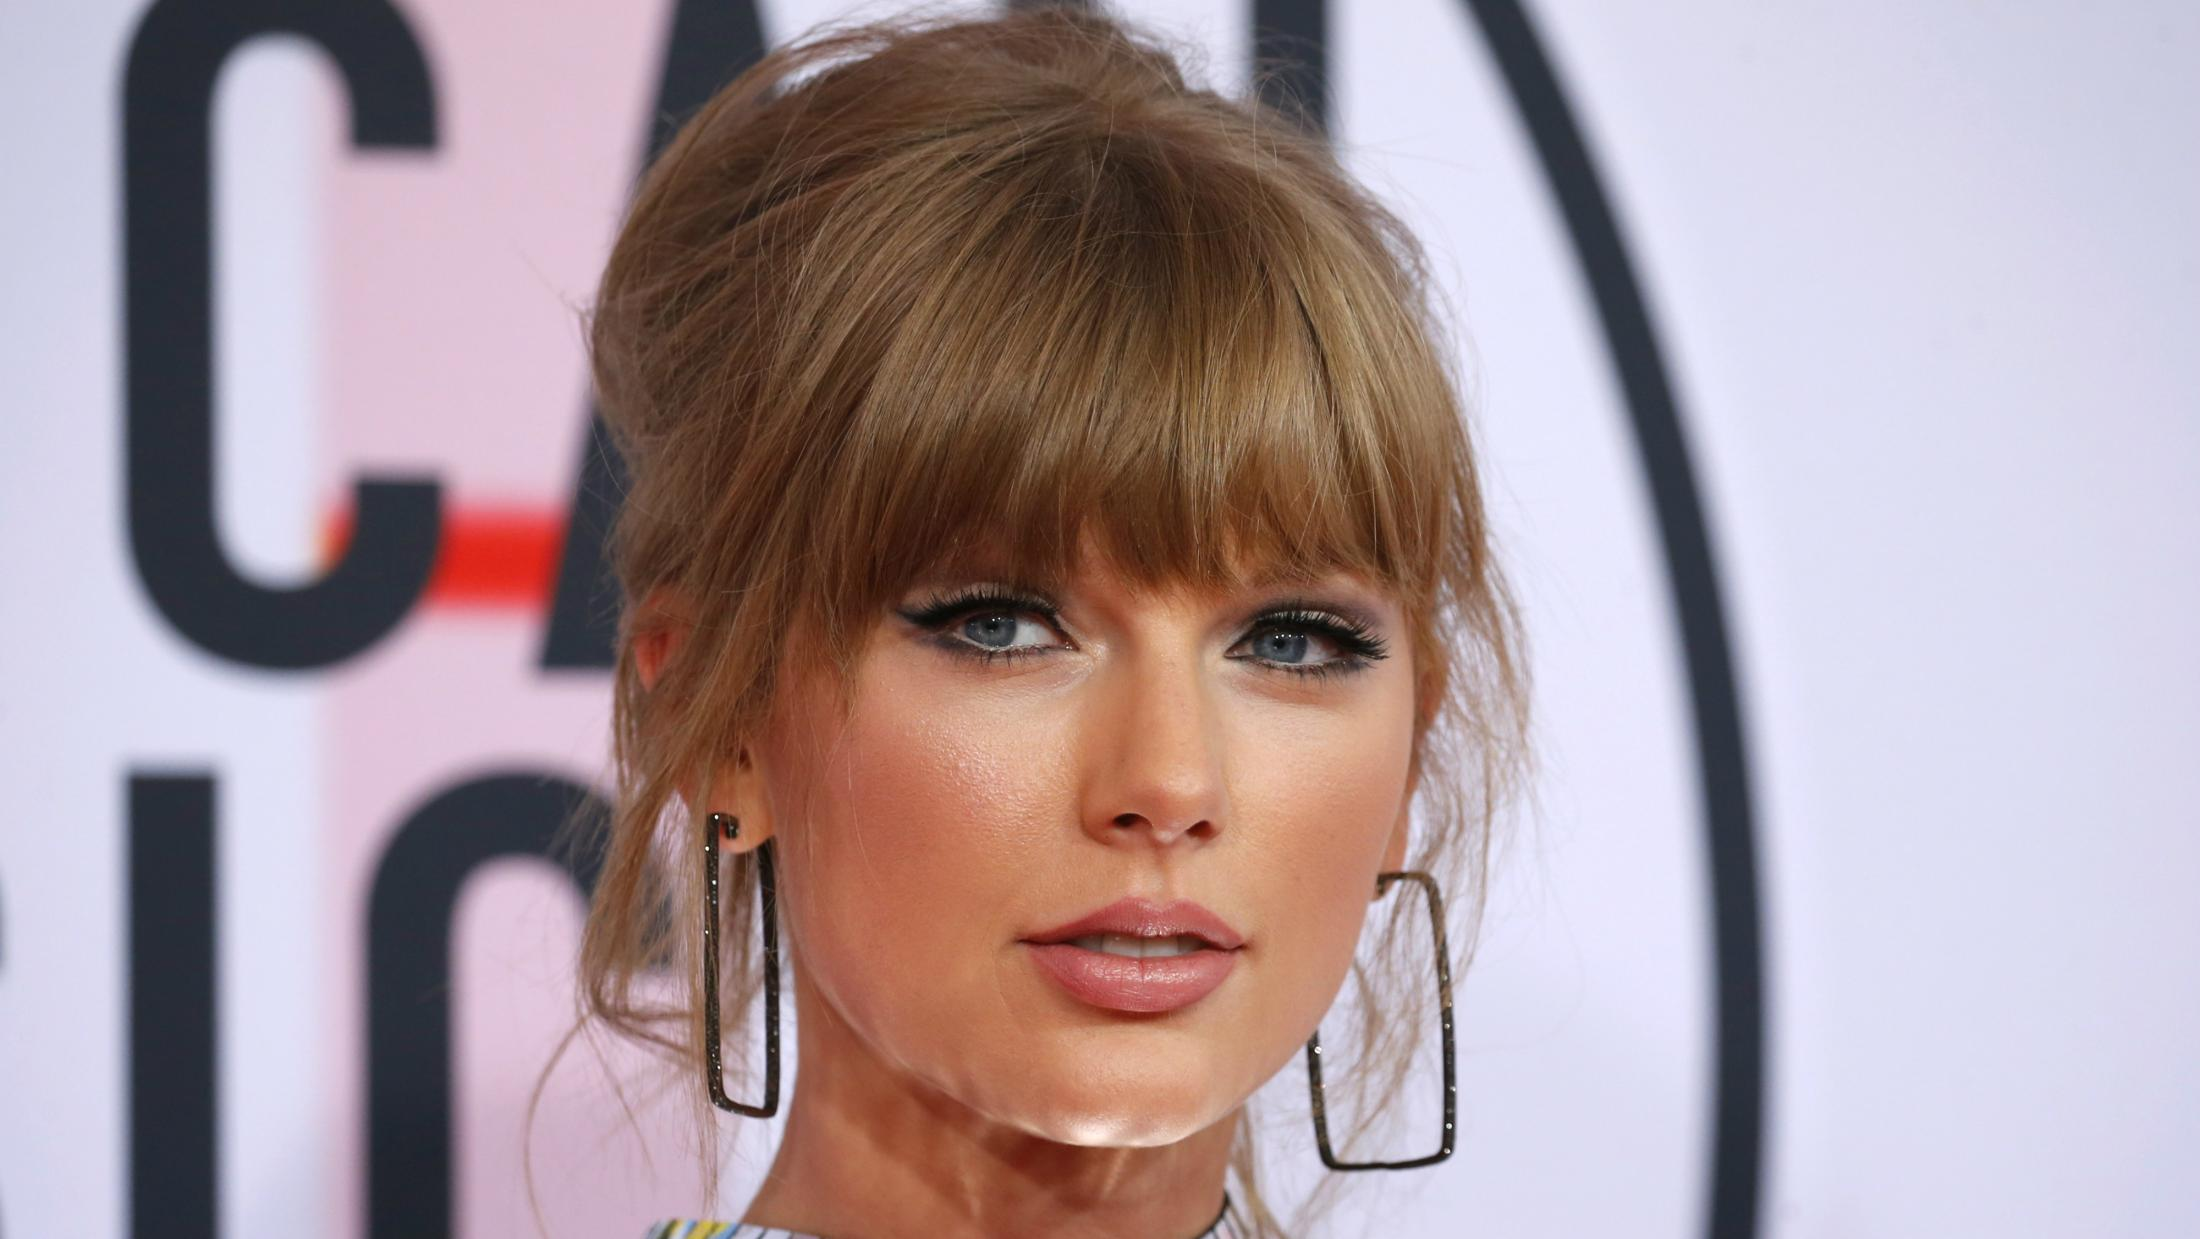 Taylor Swift shows not selling out because she is a smart businesswoman